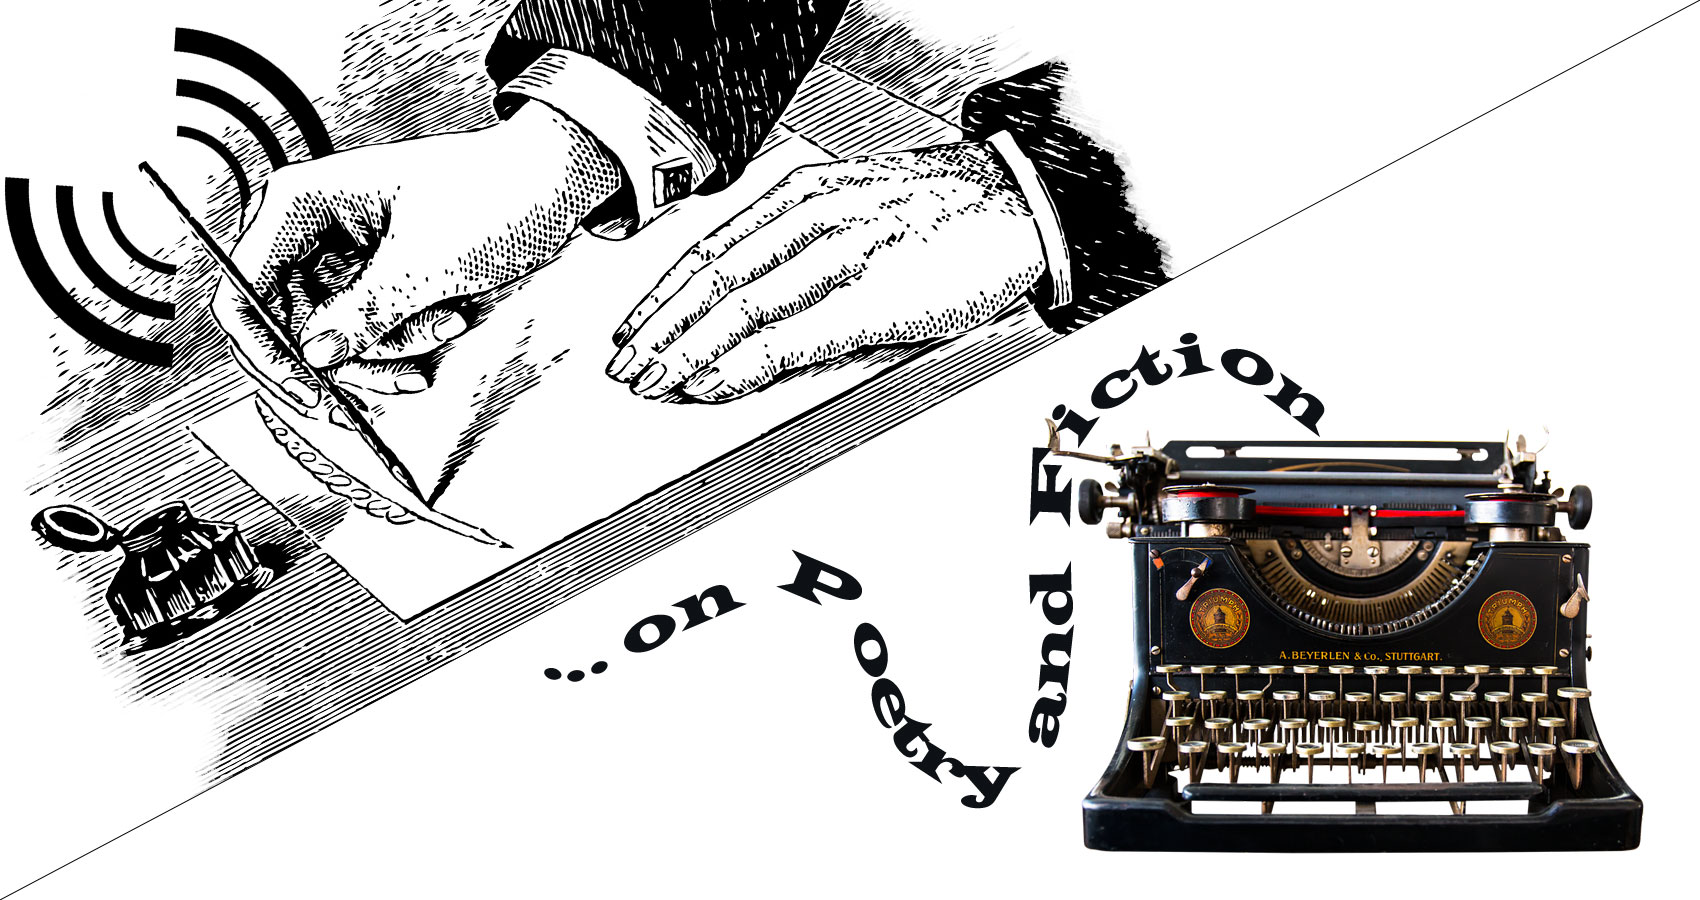 on Poetry and Fiction - Line of Communication written by Phyllis P. Colucci at Spillwords.com